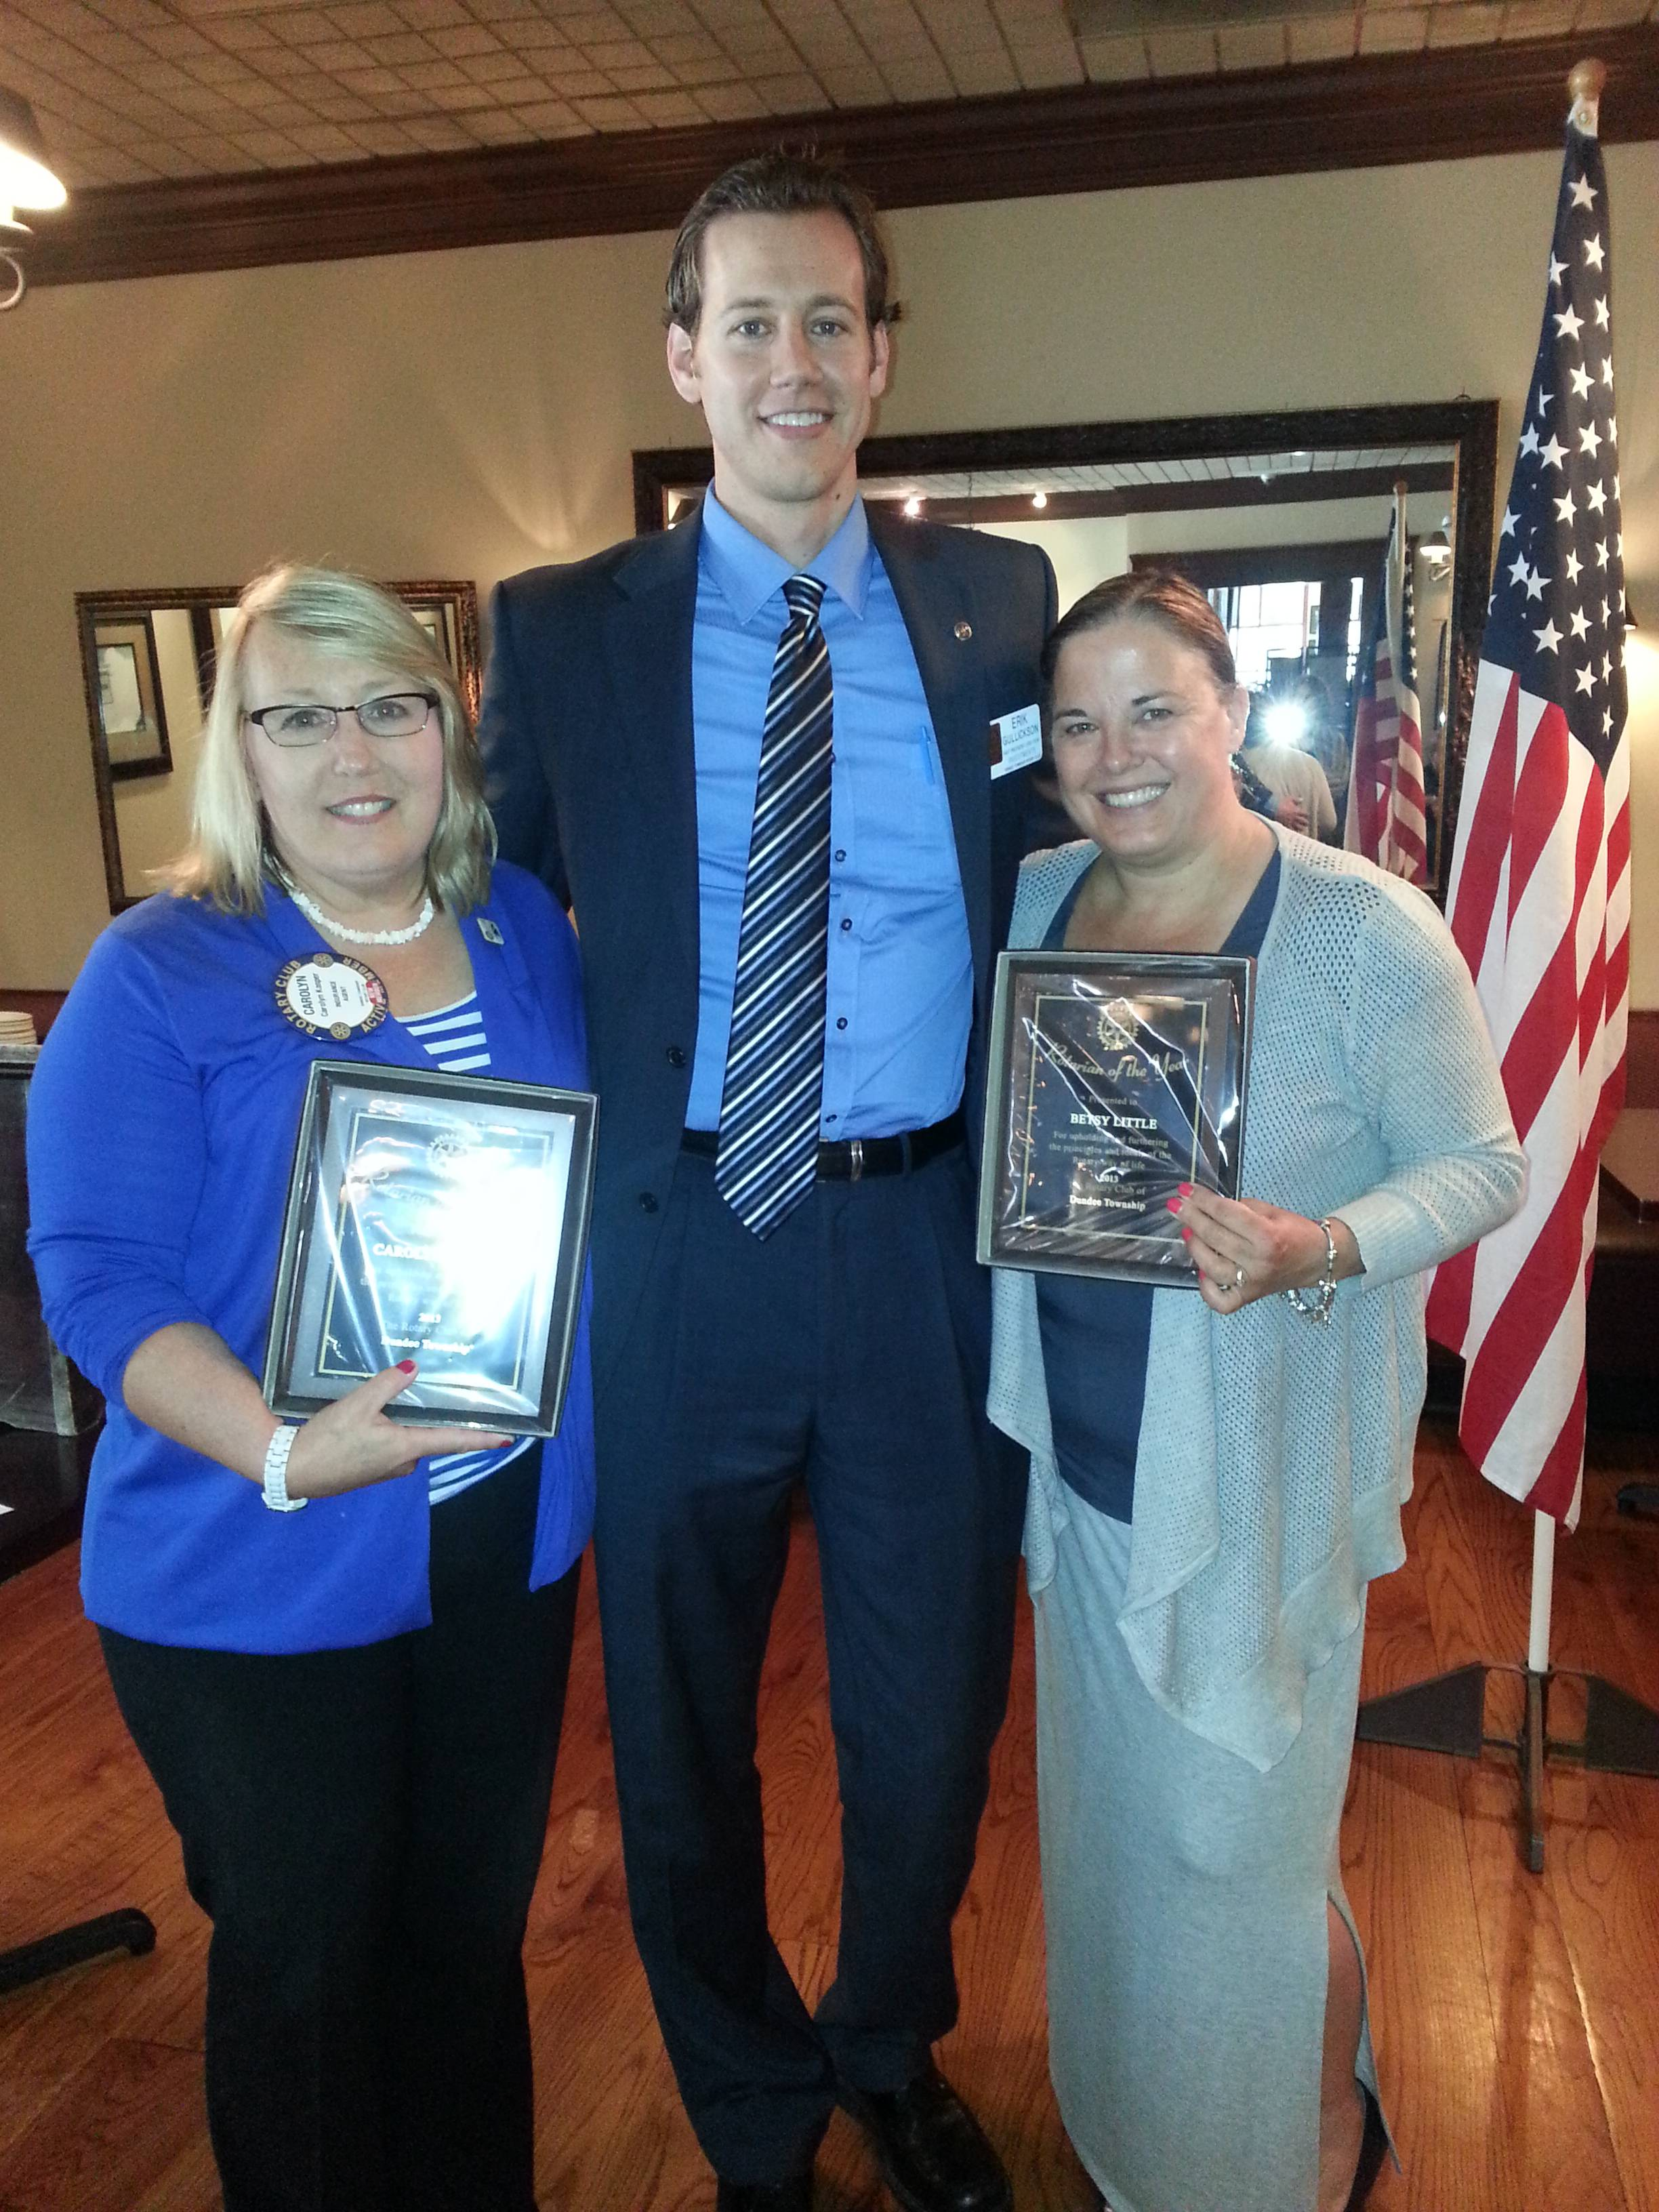 Eric Gullickson, center, recently named Carolyn Kasper, left, and Betsy Little as the club's Rotarians of the Year for their service during his presidency during the past 2013-14 year.